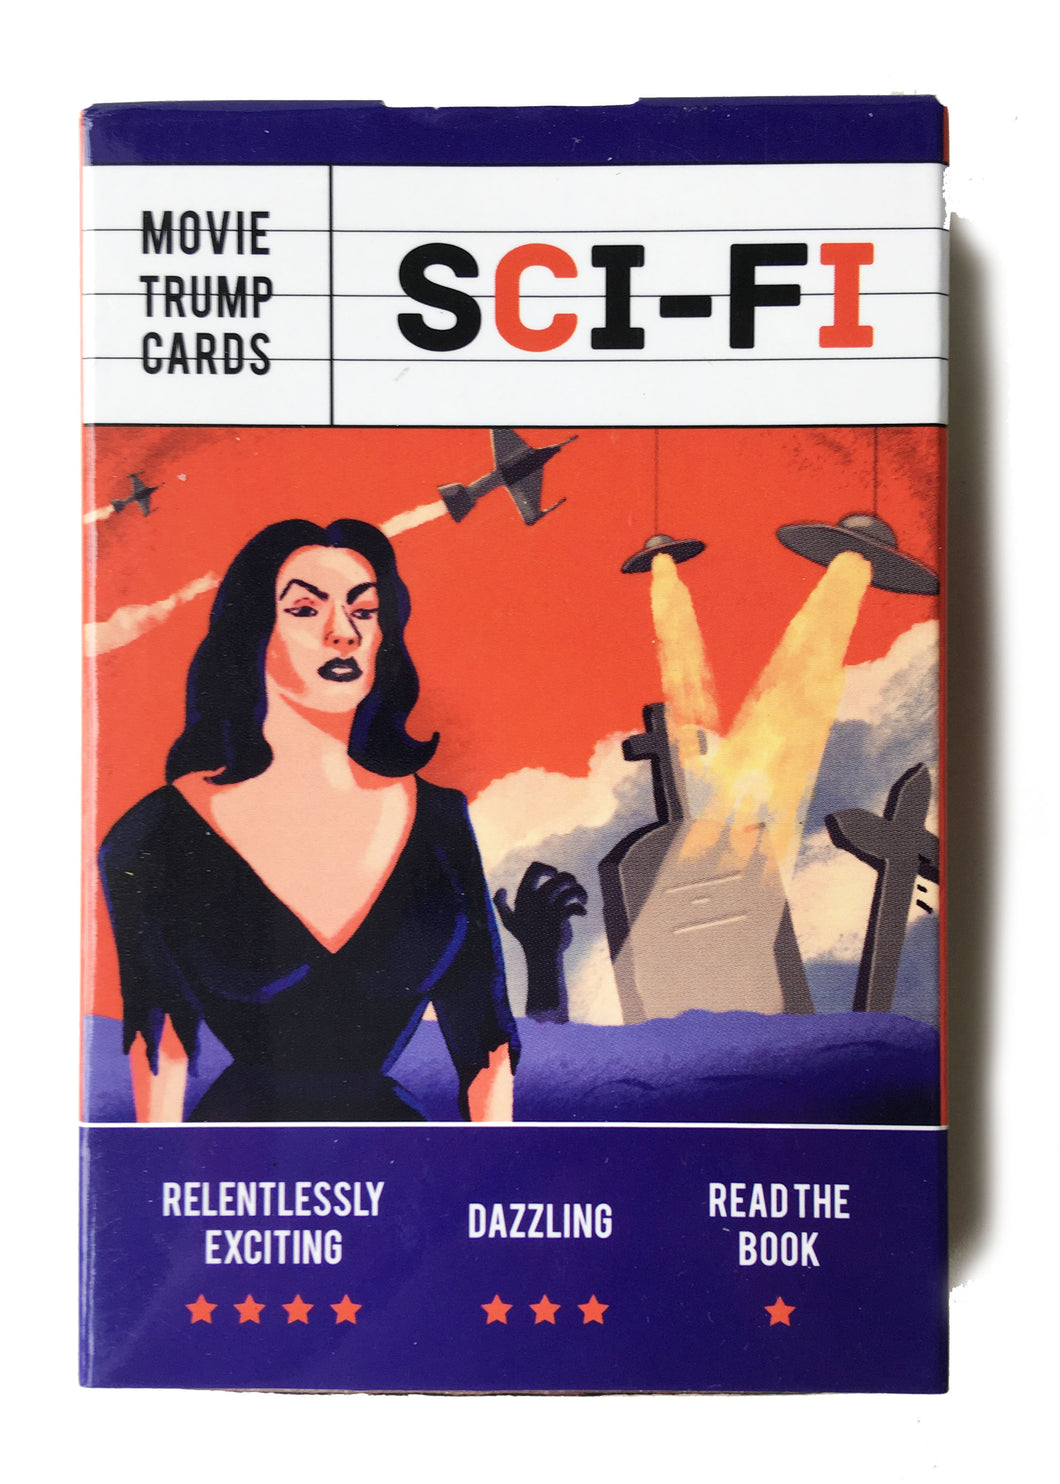 Sci-Fi Movie Trump Cards